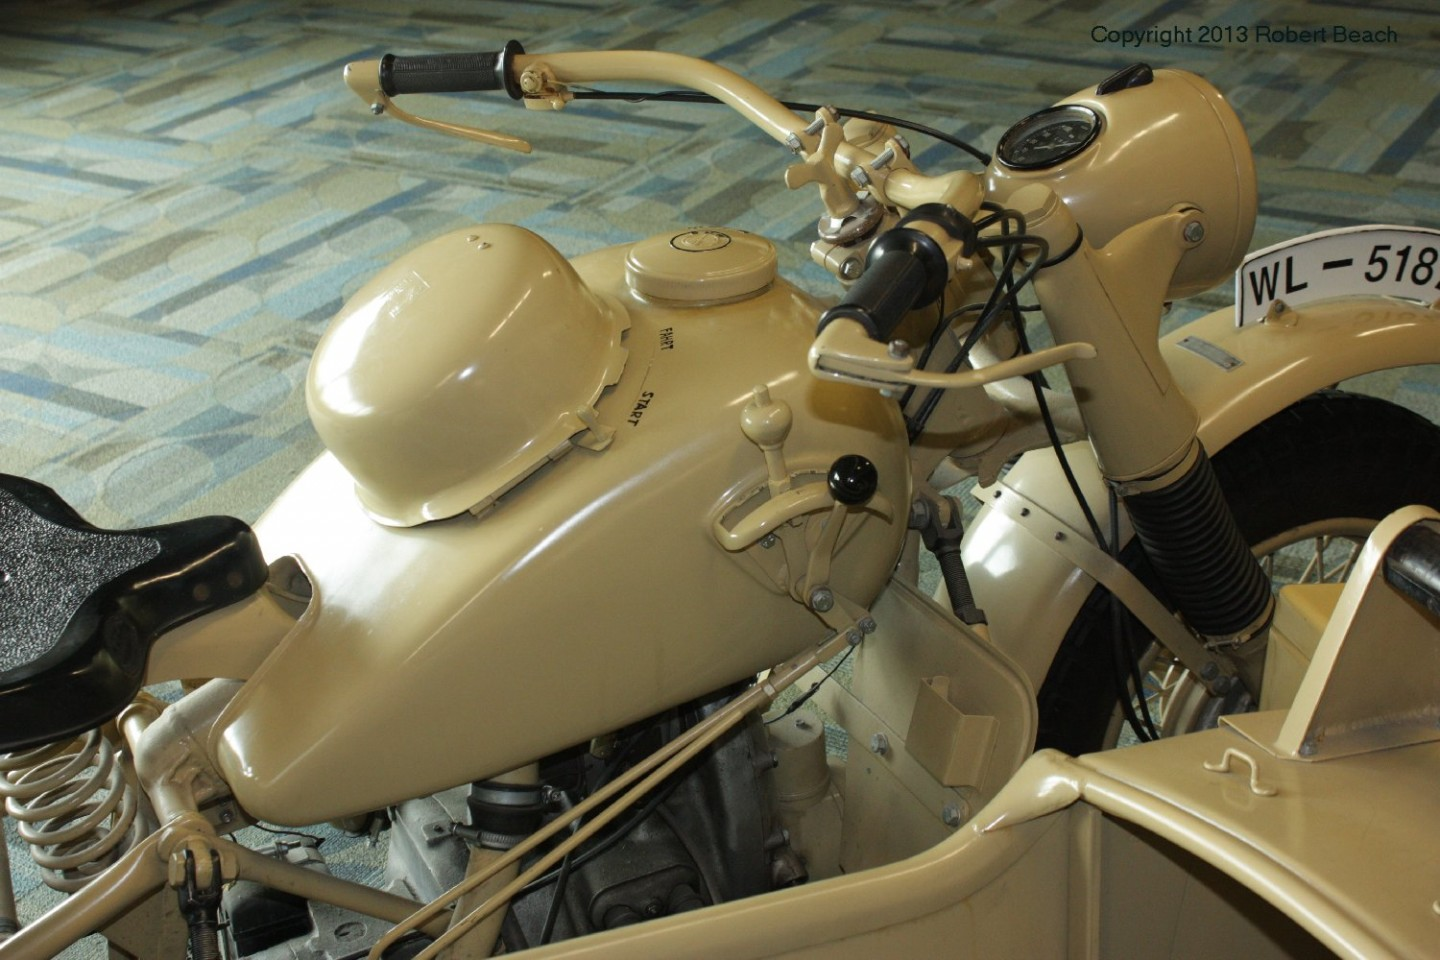 BMW_Mtrcycle_sidecar_cycle_frnt_frm rt